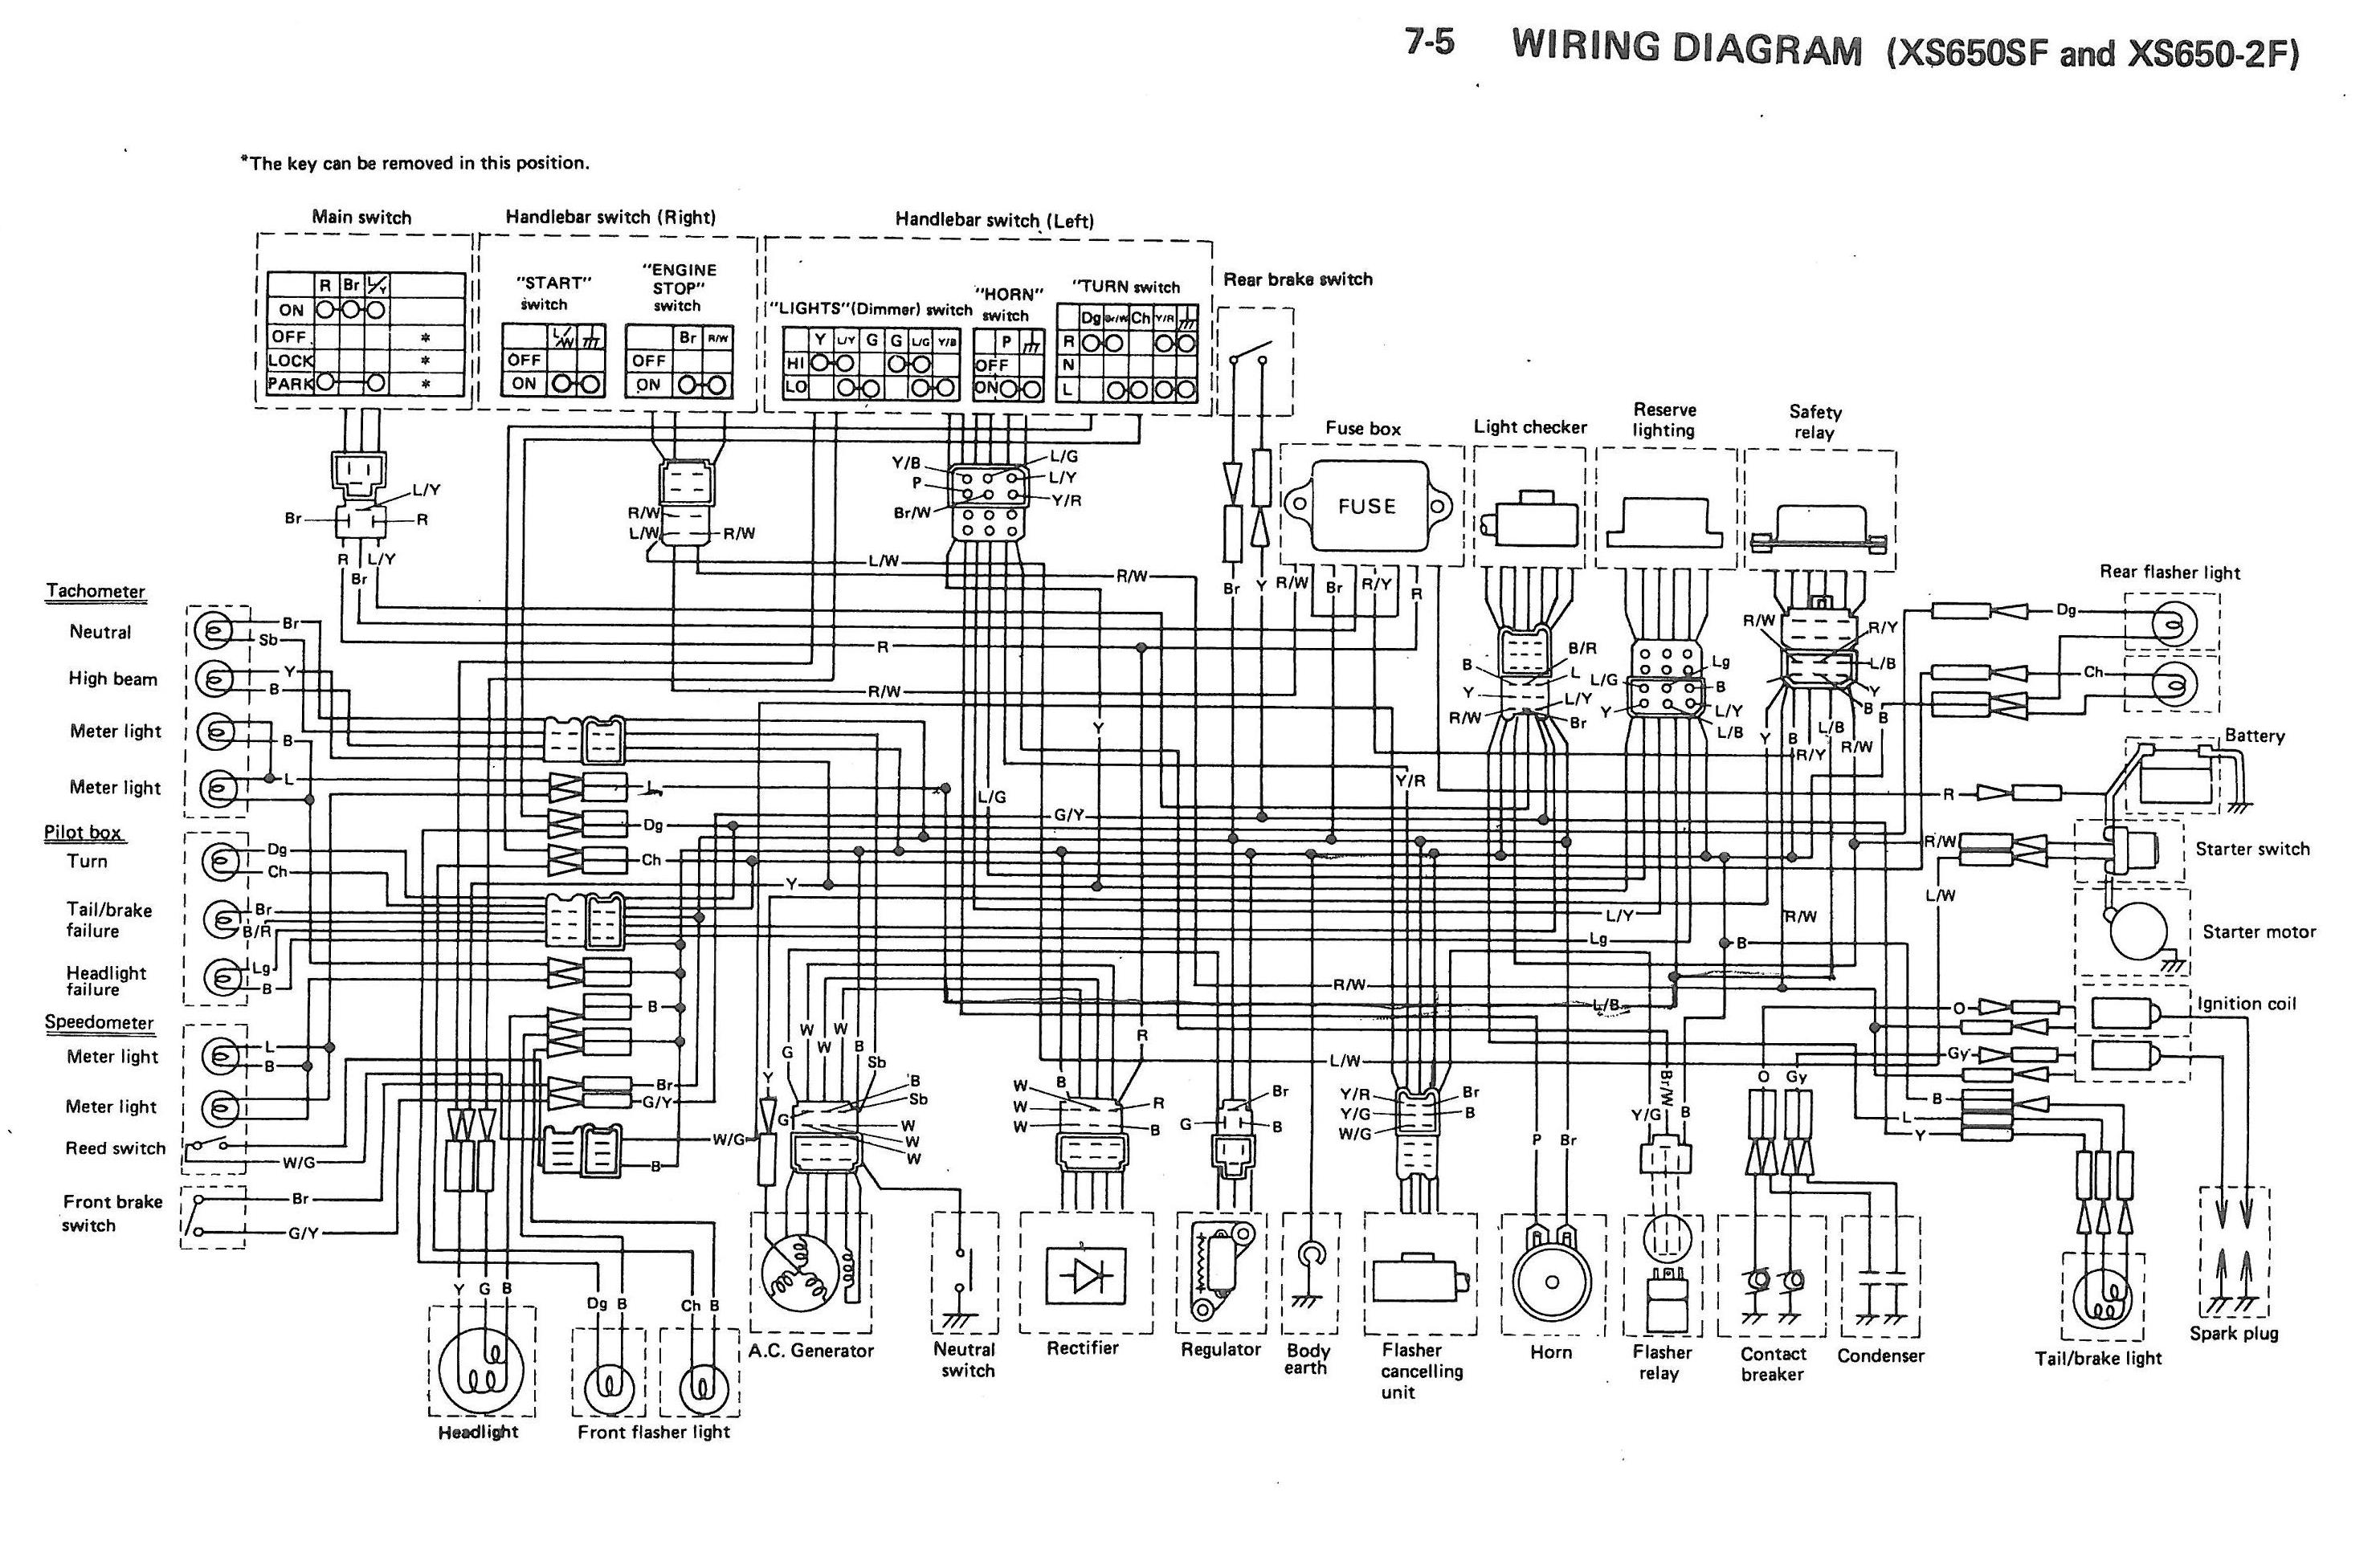 79 xs650sf 2f xs650 79 xs650sf 2f wiring diagrams thexscafe xs650 wiring diagram at gsmx.co